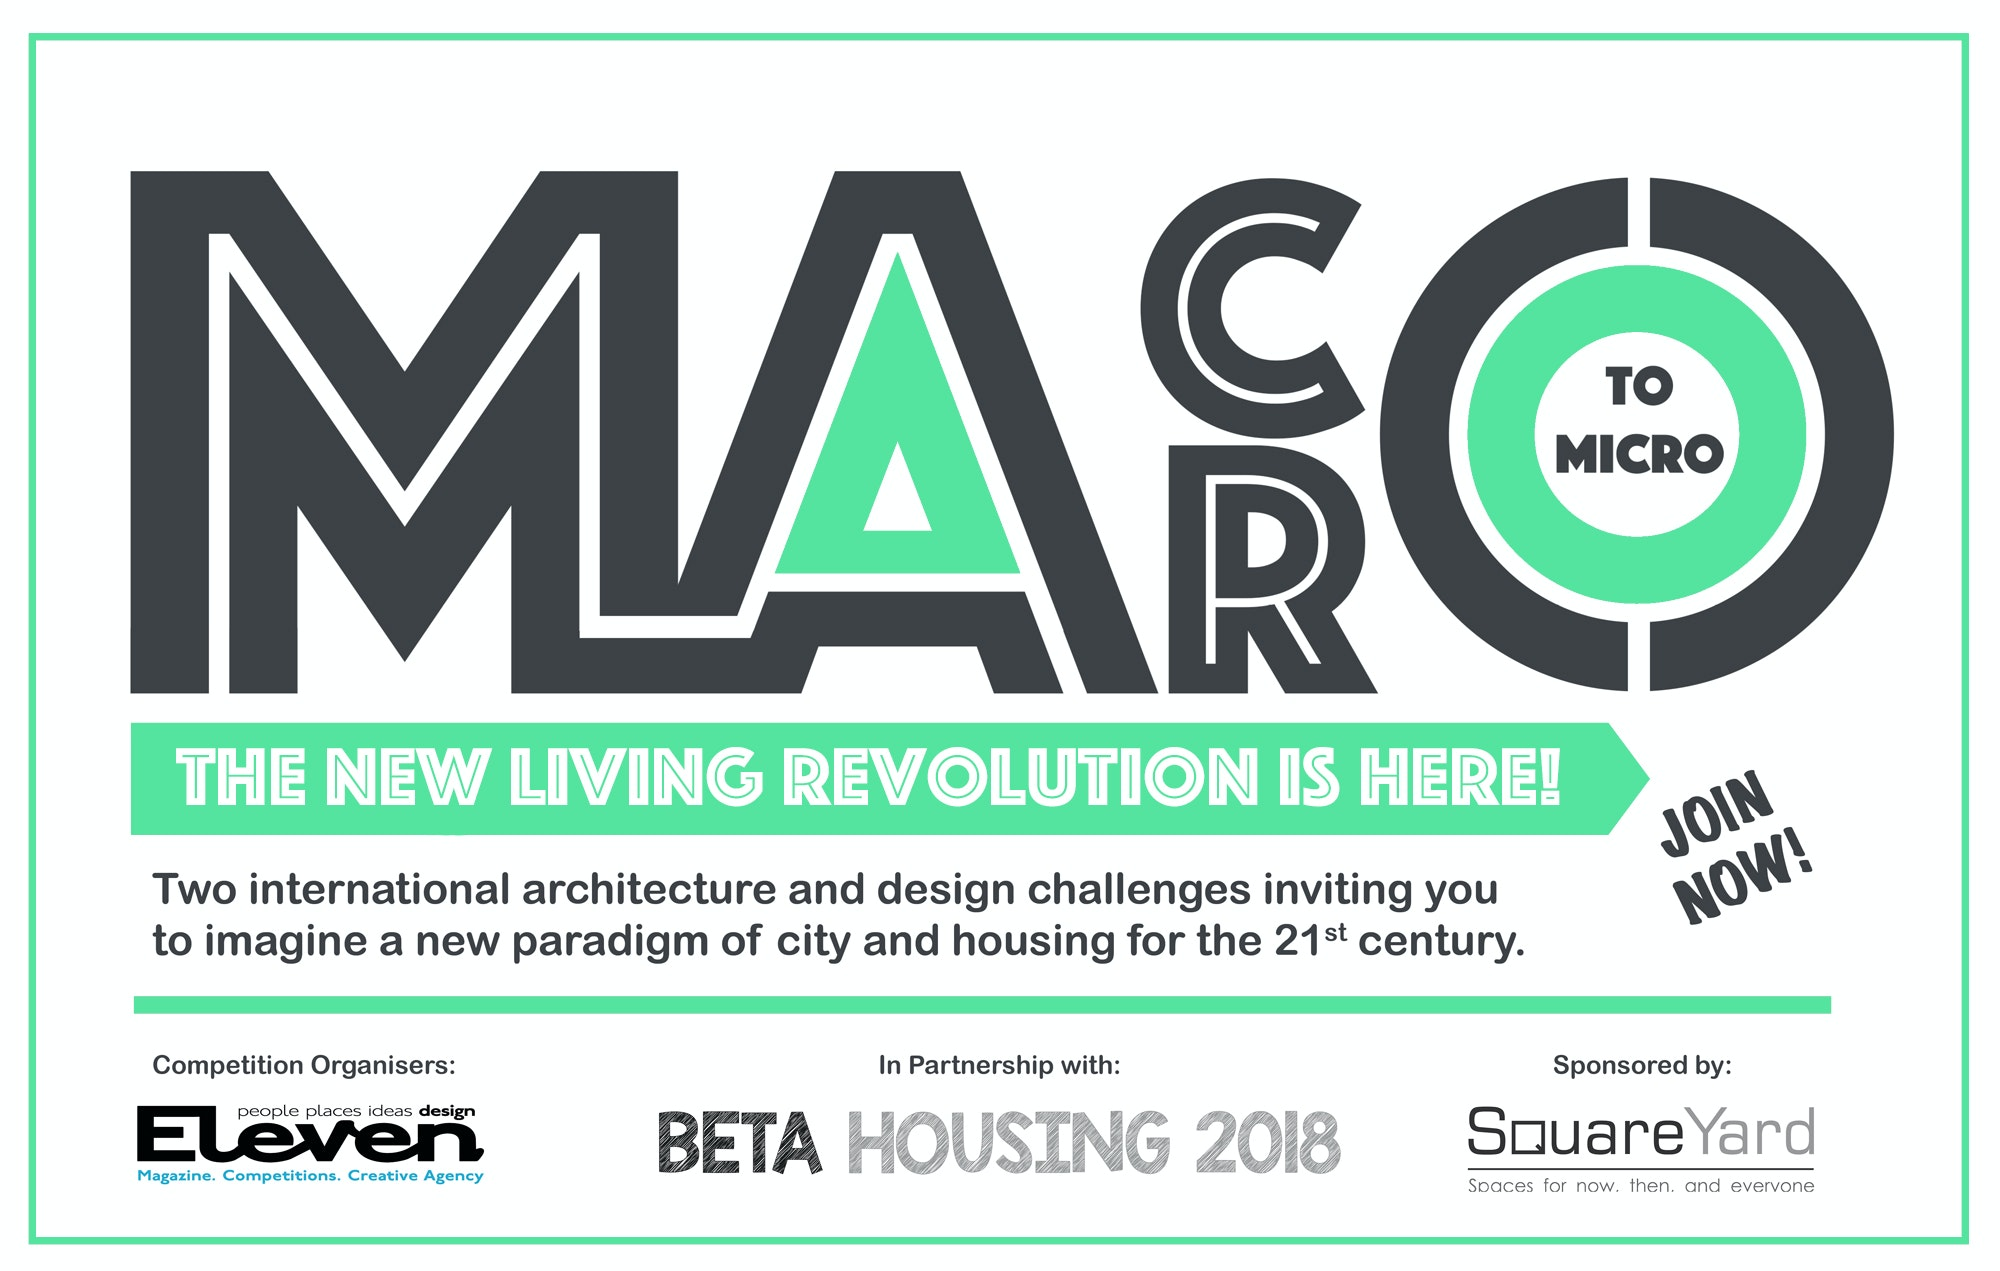 MACRO to MICRO: The Living Revolution is Here